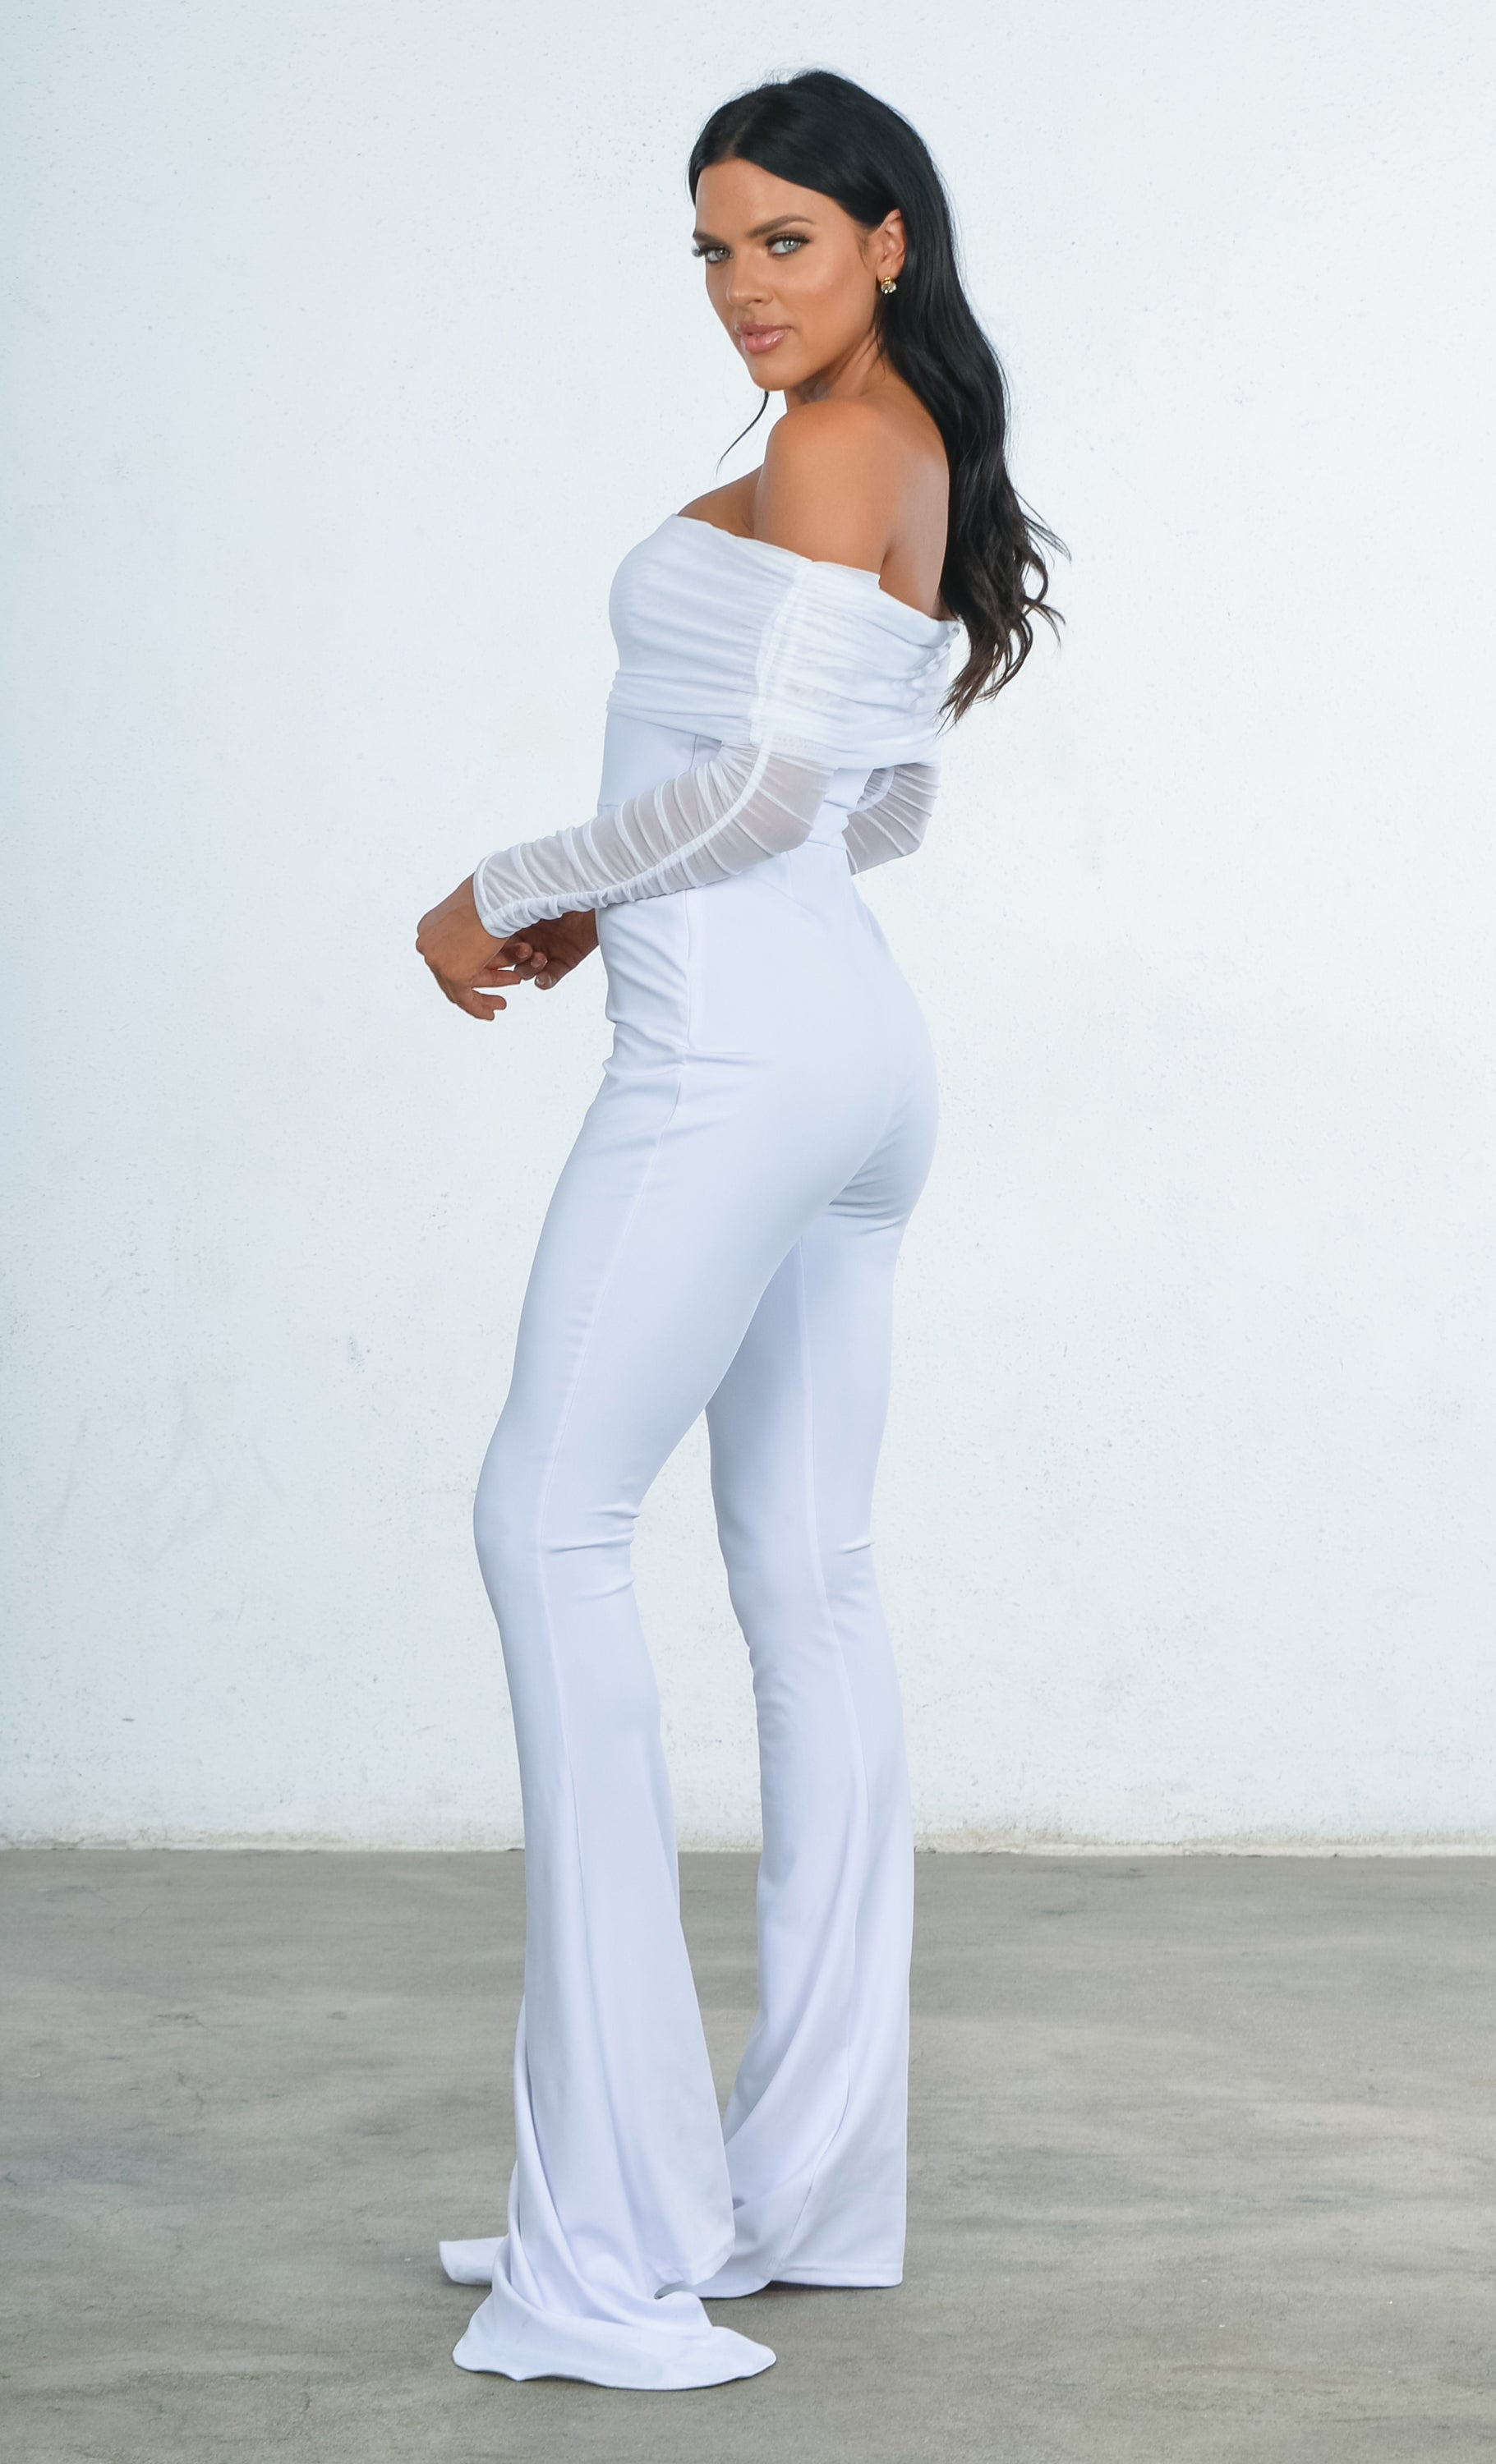 540ce61ec1a Indie XO Heavenly Bodies White Sheer Mesh Long Sleeve Off the Shoulder  Stretch Flare Train Leg